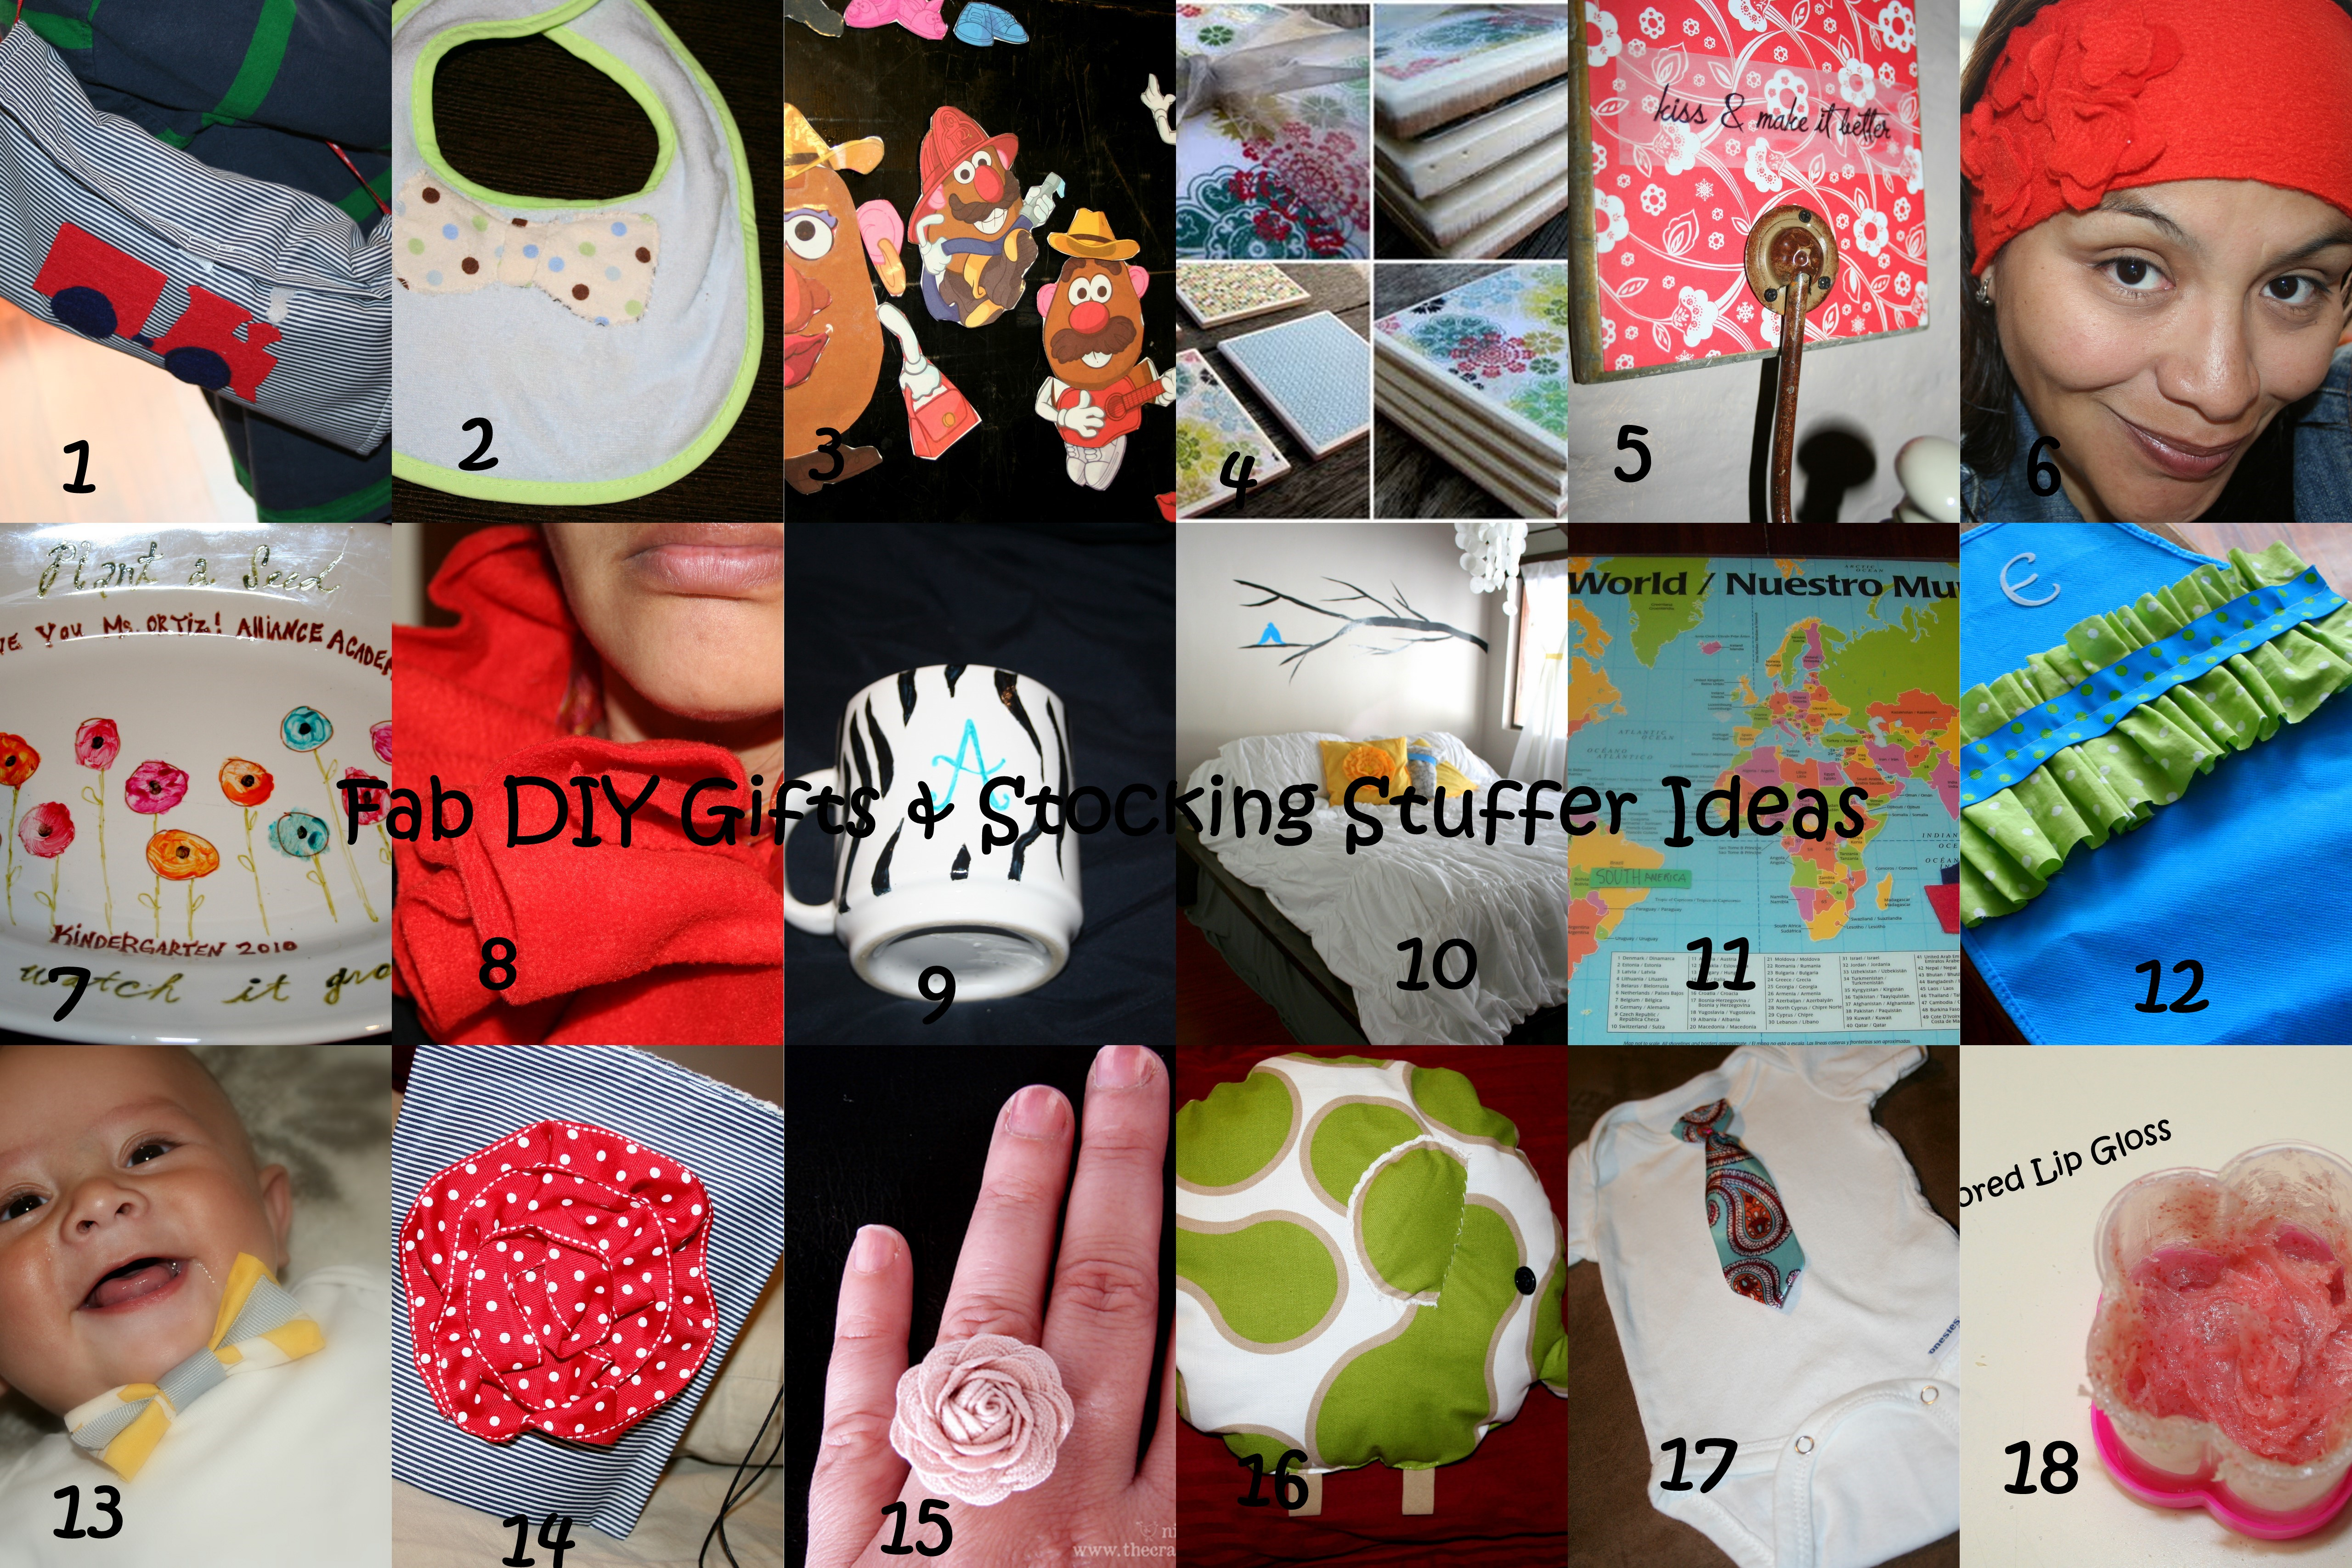 Fab diy gifts and stocking stuffer ideas for under 10 for Good ideas for stocking stuffers